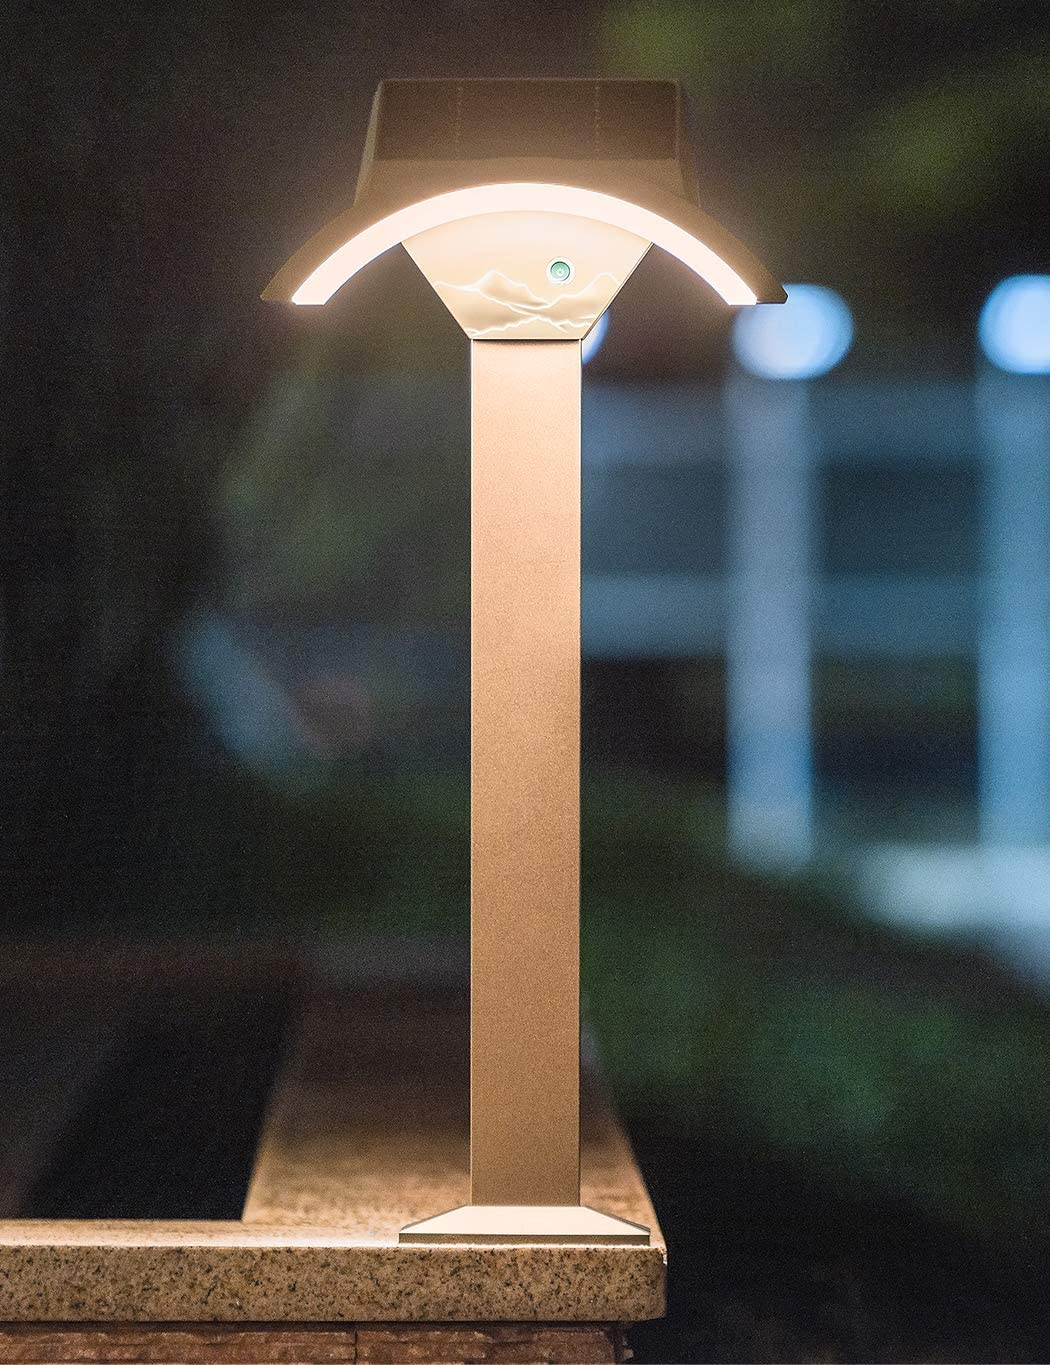 Solar Post Light Outdoor, Solar Lamp Post Light, Warm White LED Lighting for Fence Deck Garden Porch Patio Path Large